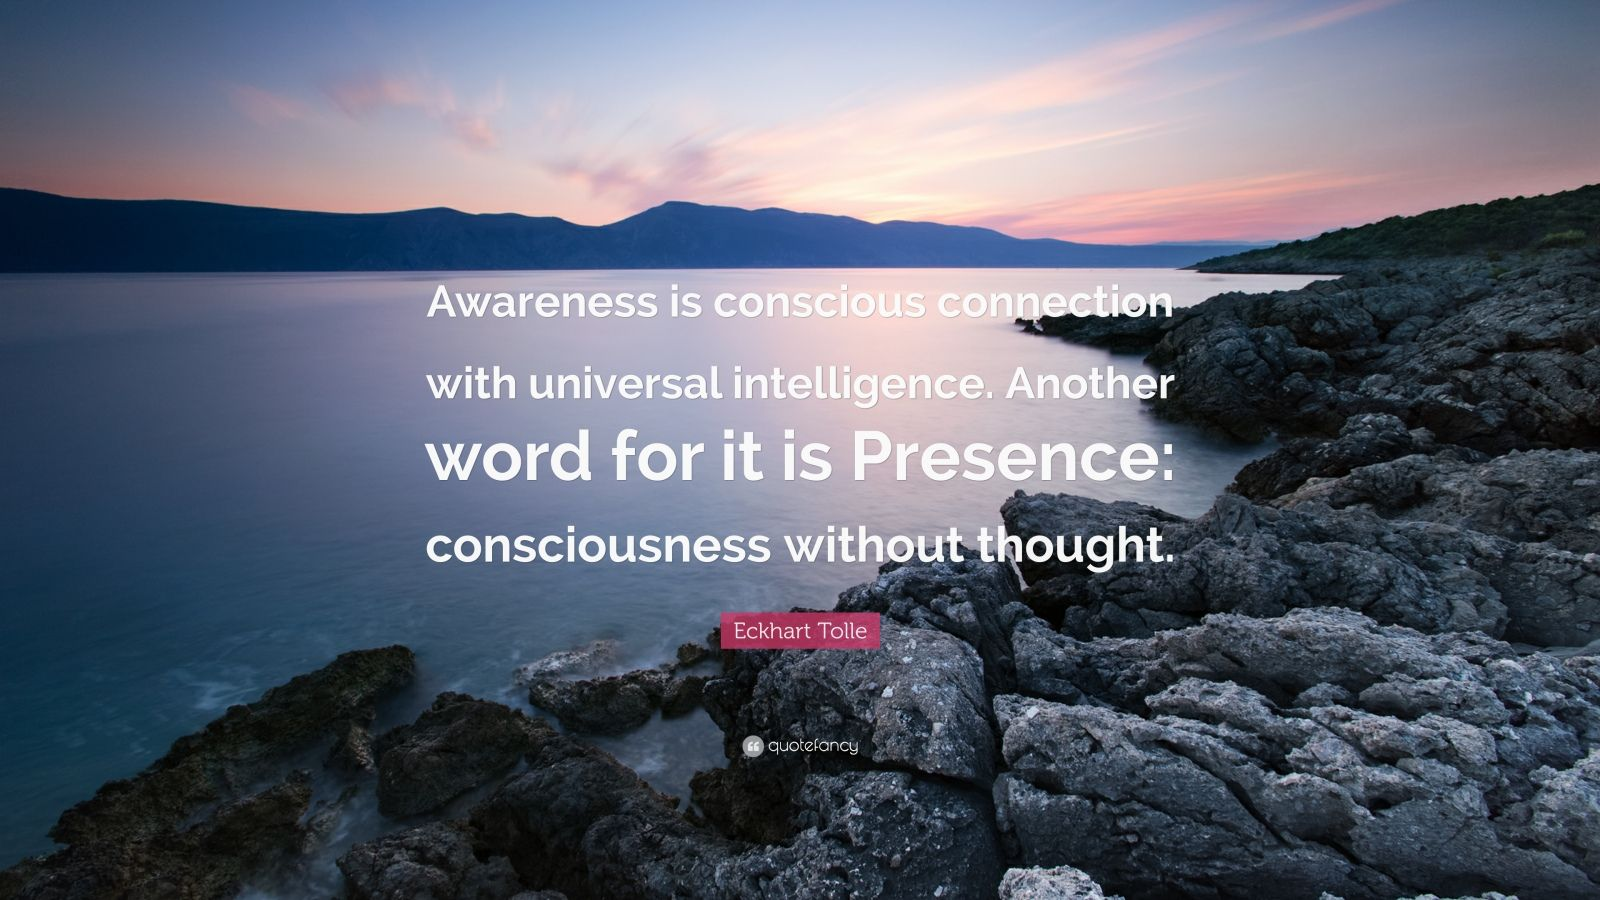 """Eckhart Tolle Quote: """"Awareness is conscious connection with universal intelligence. Another word for it is Presence: consciousness without thought."""""""